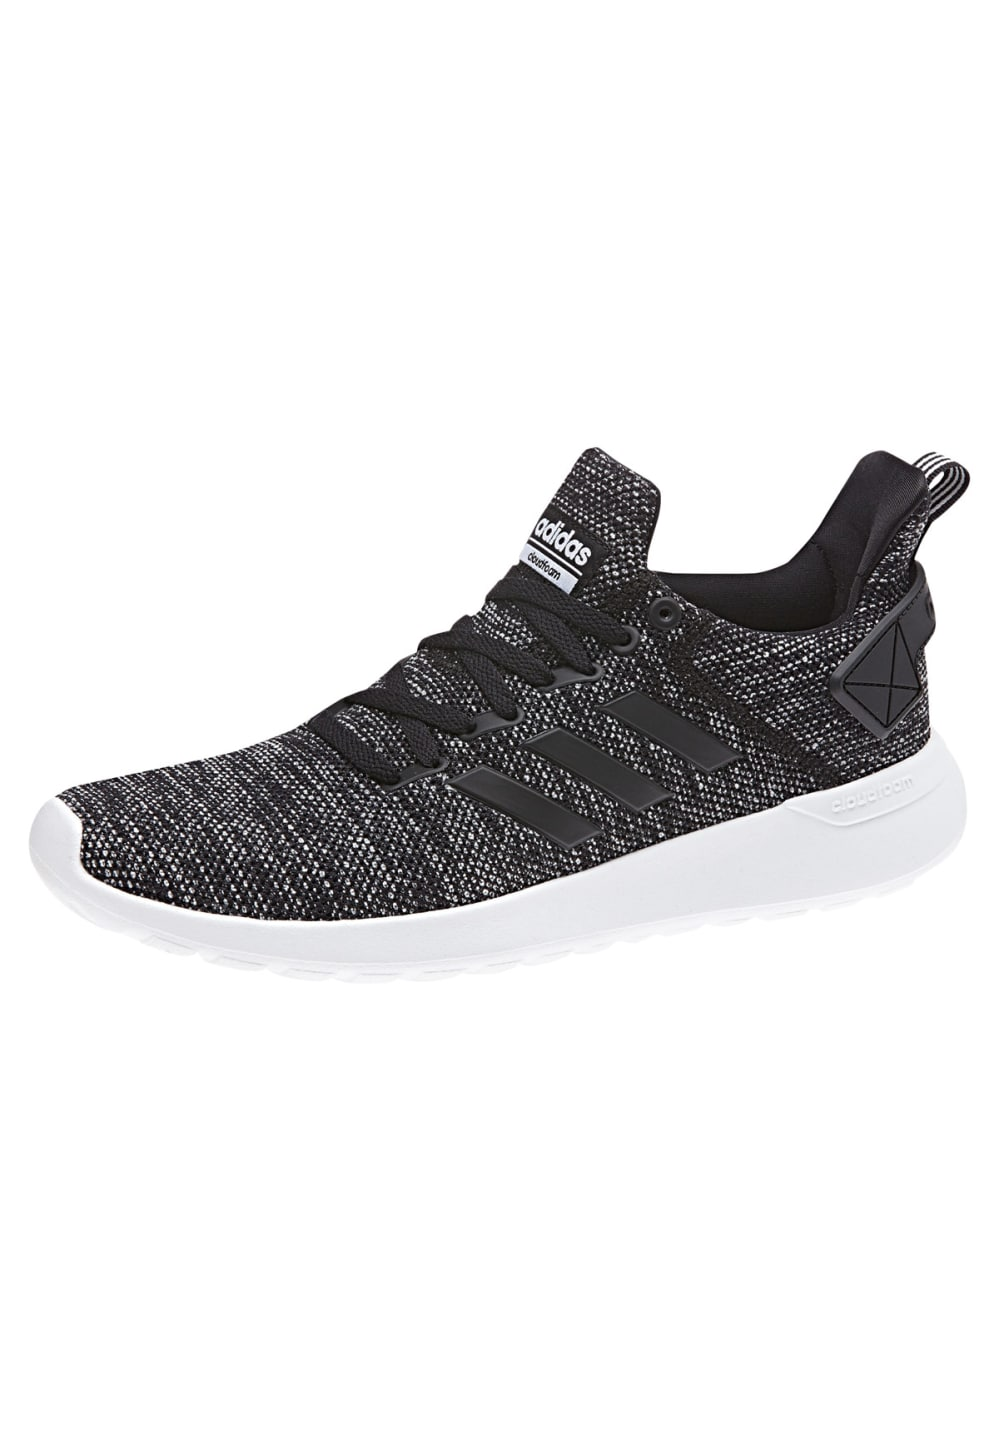 adidas neo Cf Lite Racer Byd - Running shoes for Men - Black